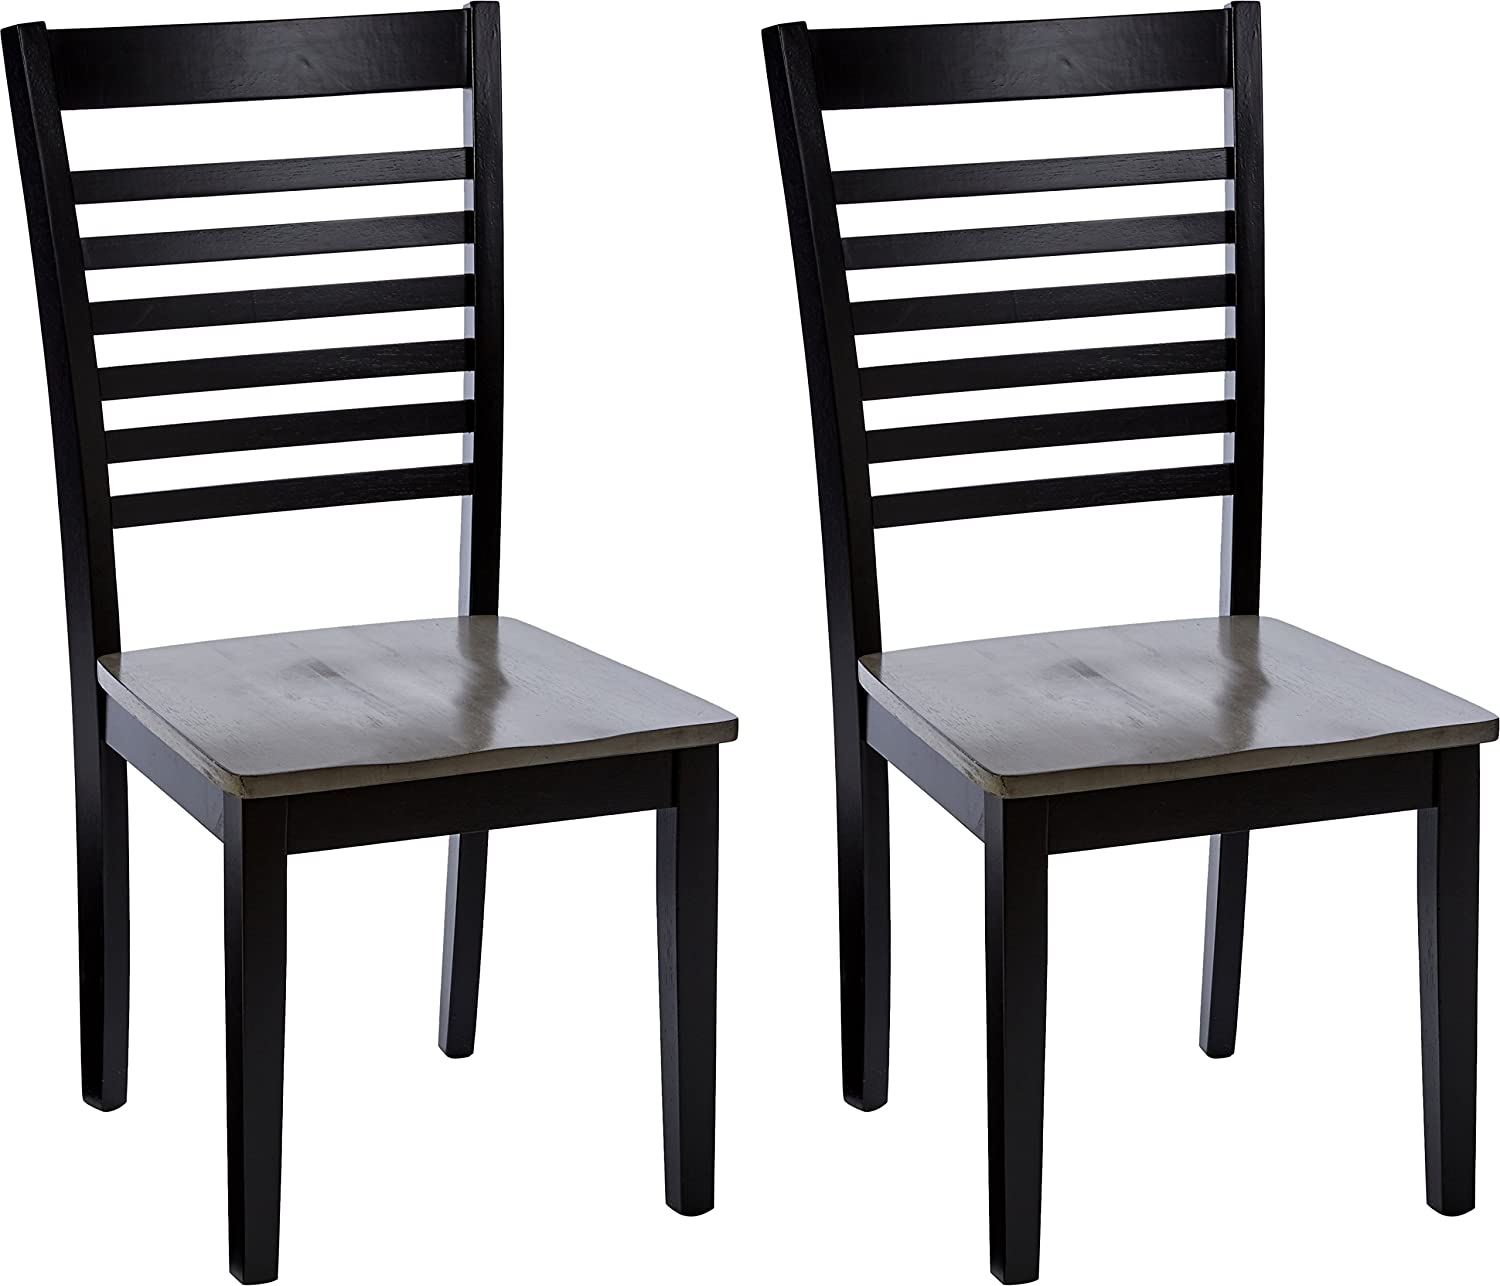 Simmons Casegoods South Beach Chairs, 2 pack